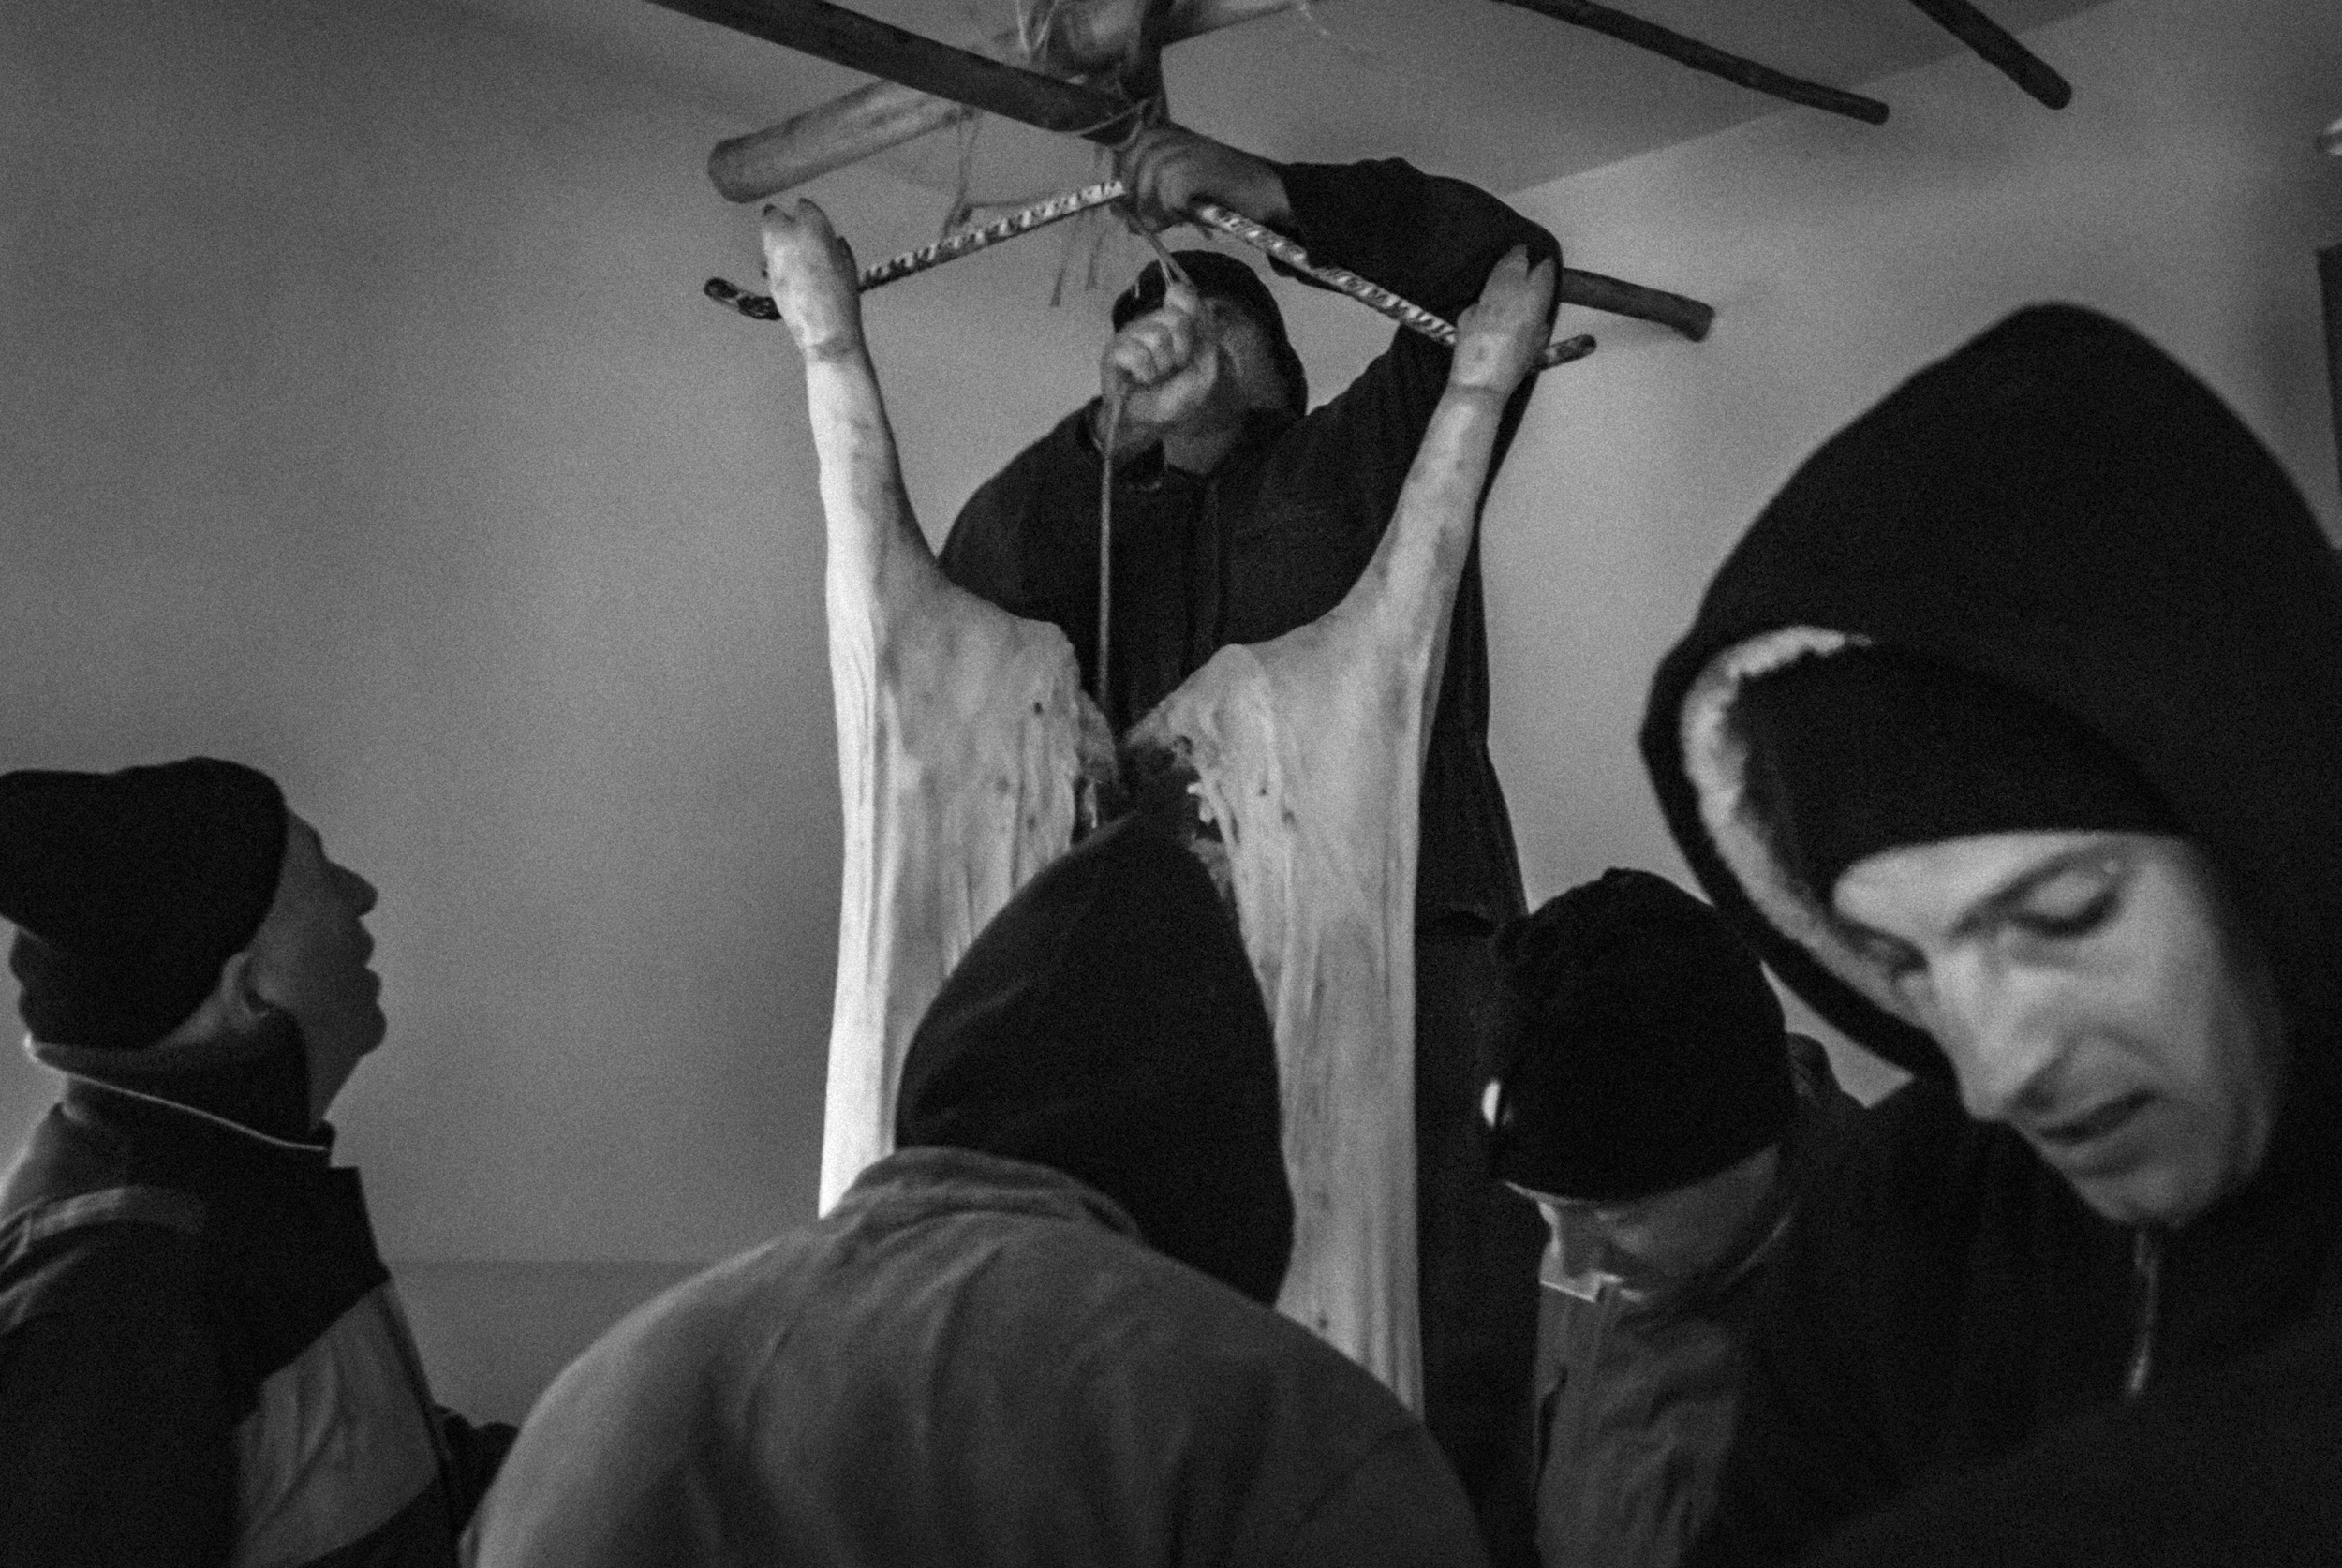 Sant'Angelo del Pesco (IS), Italy - January 2016. contrada Canala. The pig, after being killed with a shot in the head, is brought inside, in a room which allows the meat to get colder, before butchering.